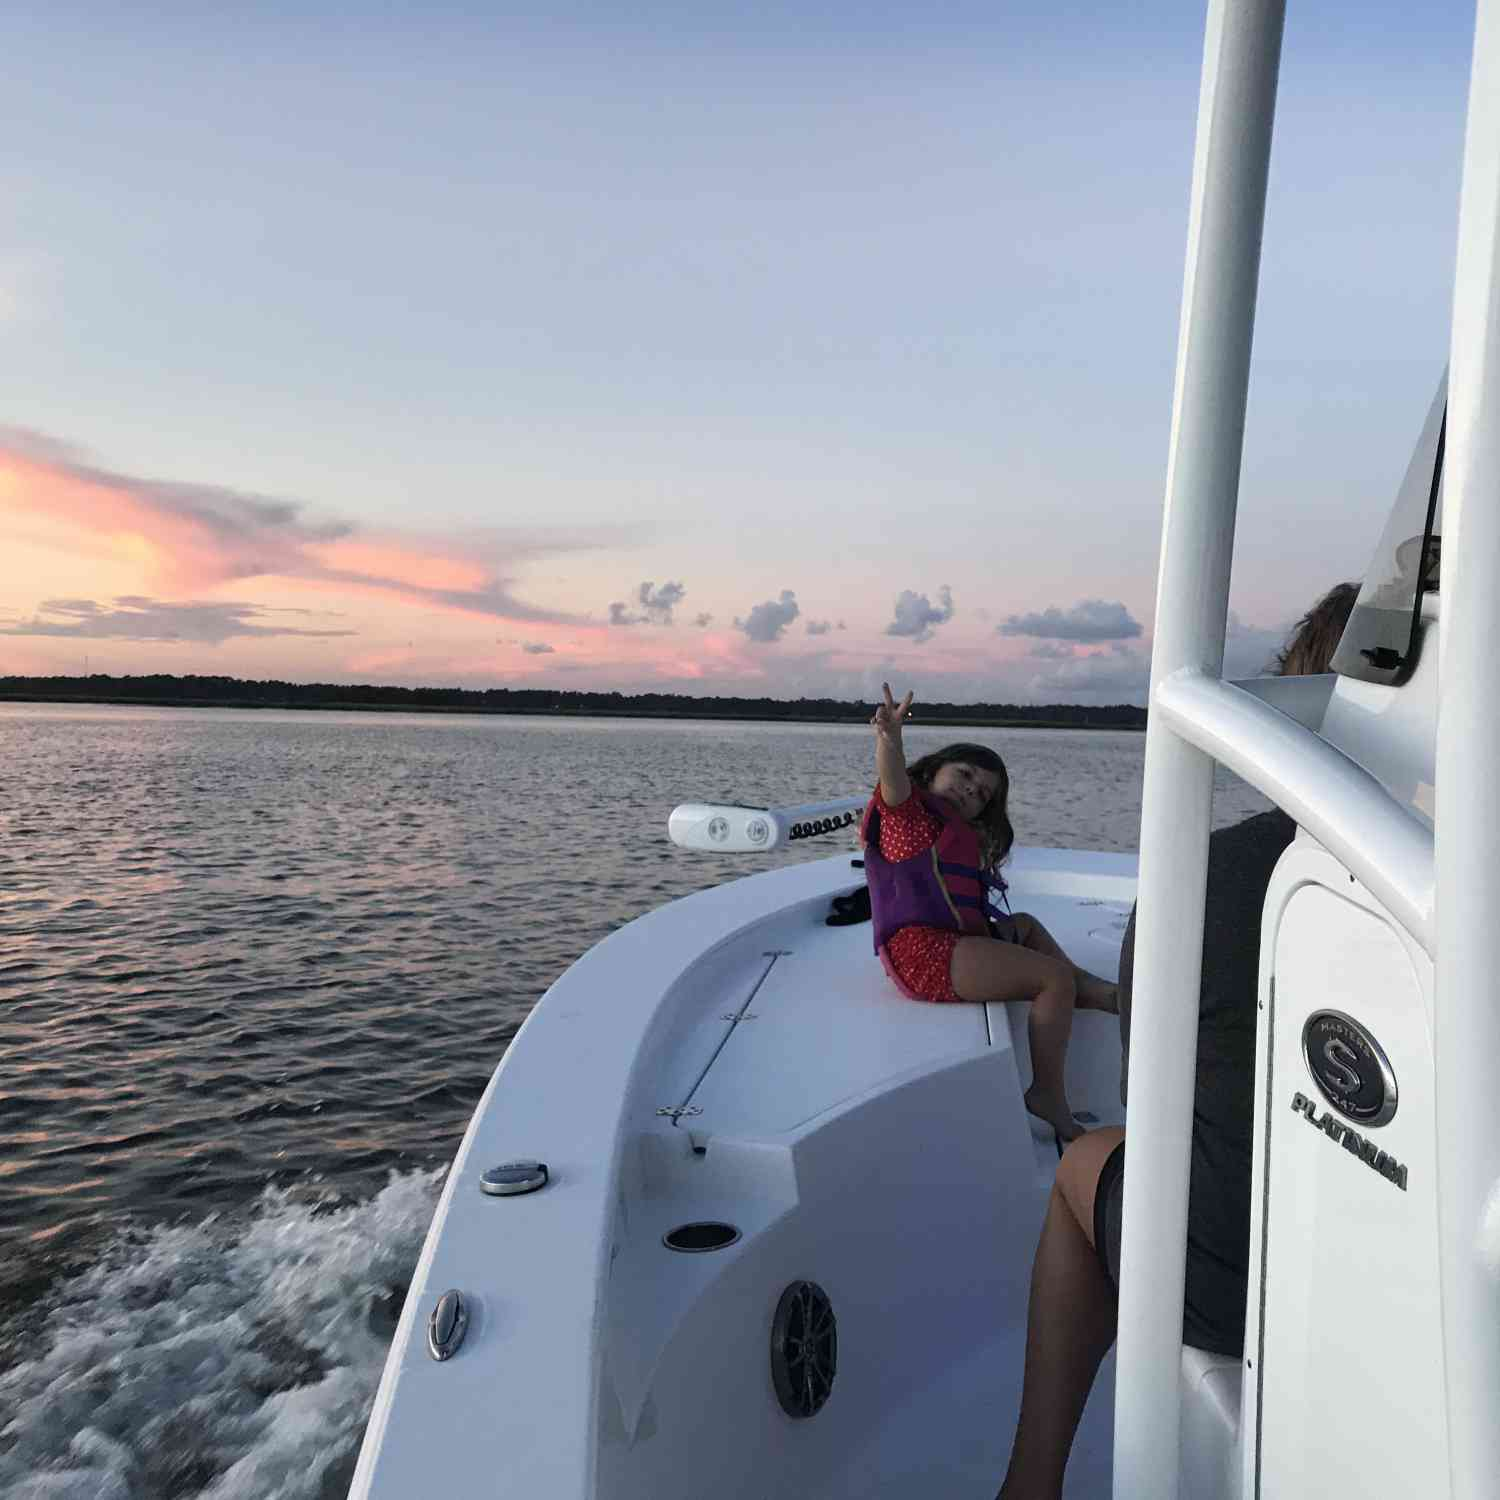 Title: Peace out dude - On board their Sportsman Masters 247 Bay Boat - Location: Myrtle Island, SC. Participating in the Photo Contest #SportsmanSeptember2018